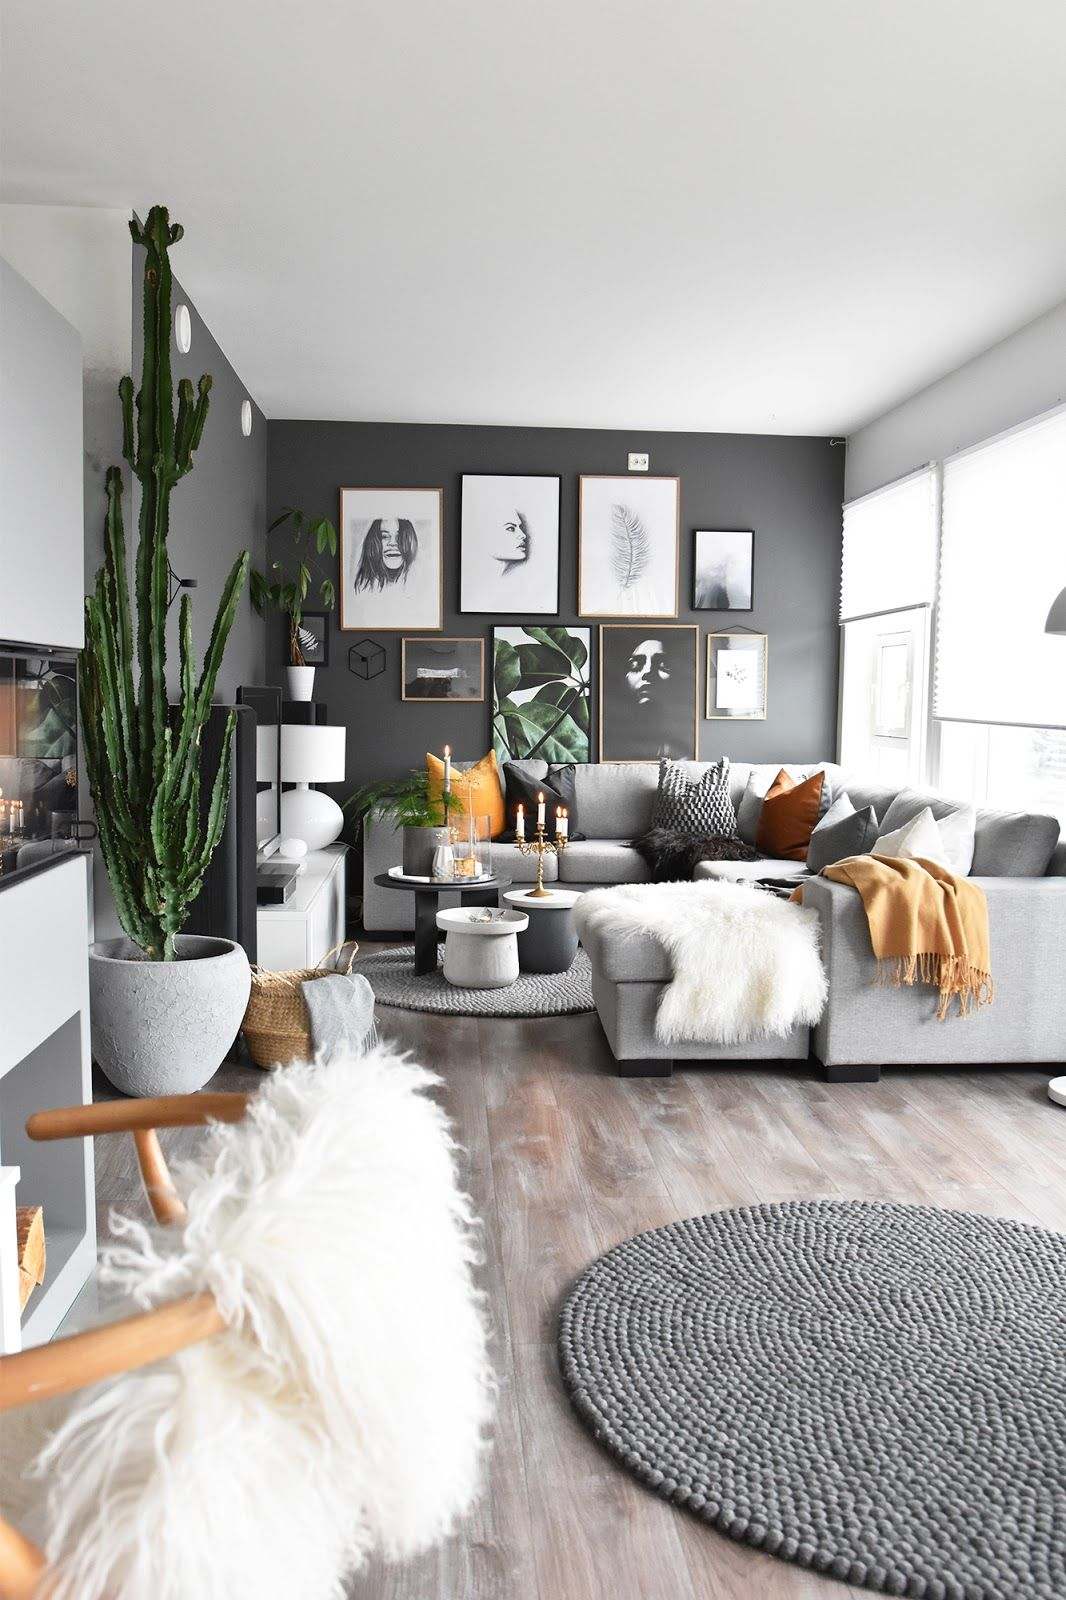 Pin By Jusliv On 客厅 College Apartment Decor Apartment Decorating On A Budget Tumblr Room Decor